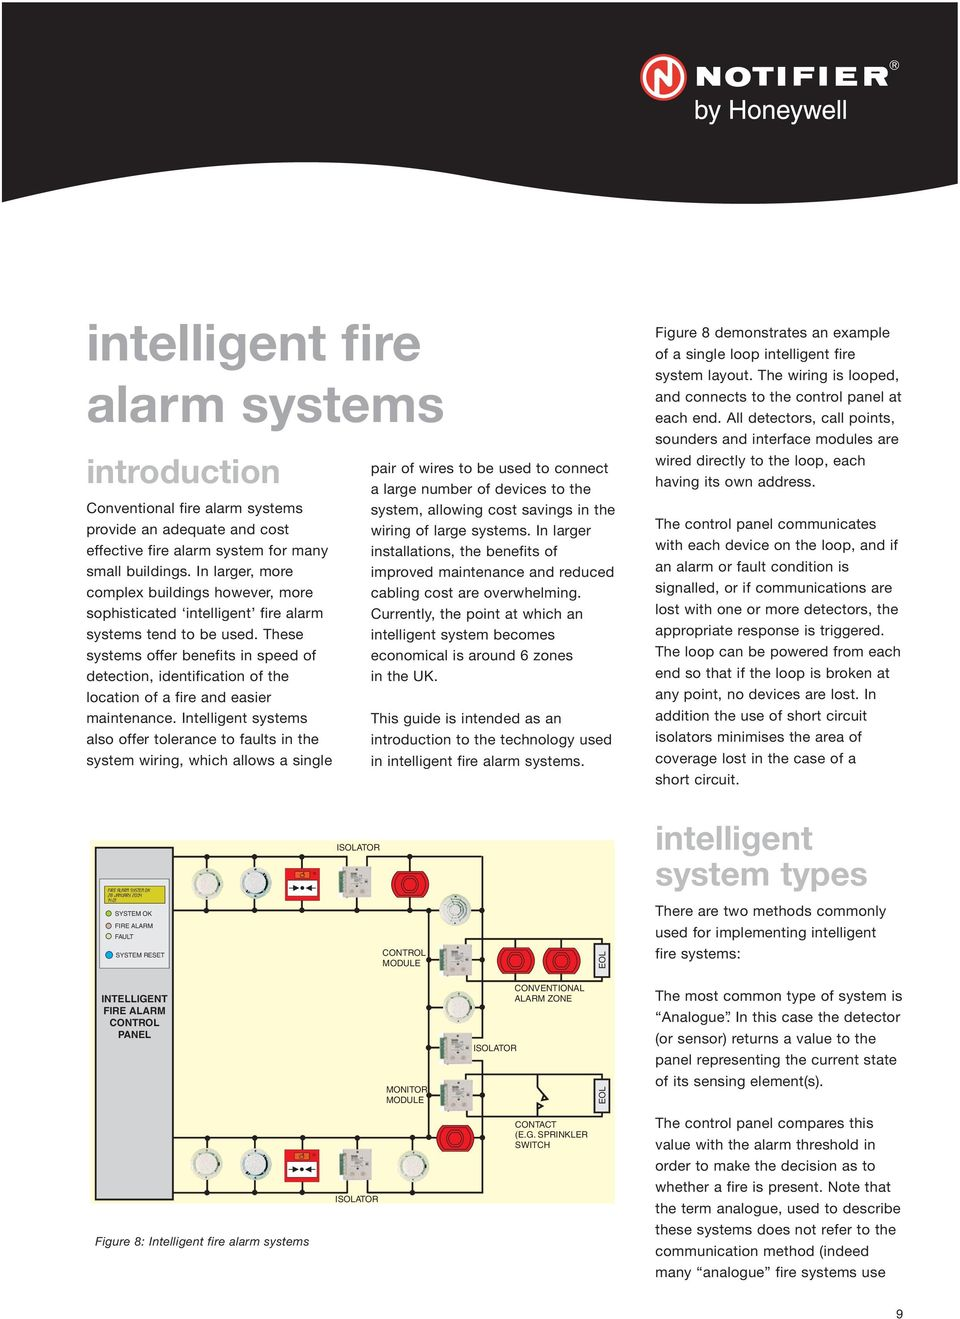 These systems offer benefits in speed of detection, identification of the location of a fire and easier maintenance.